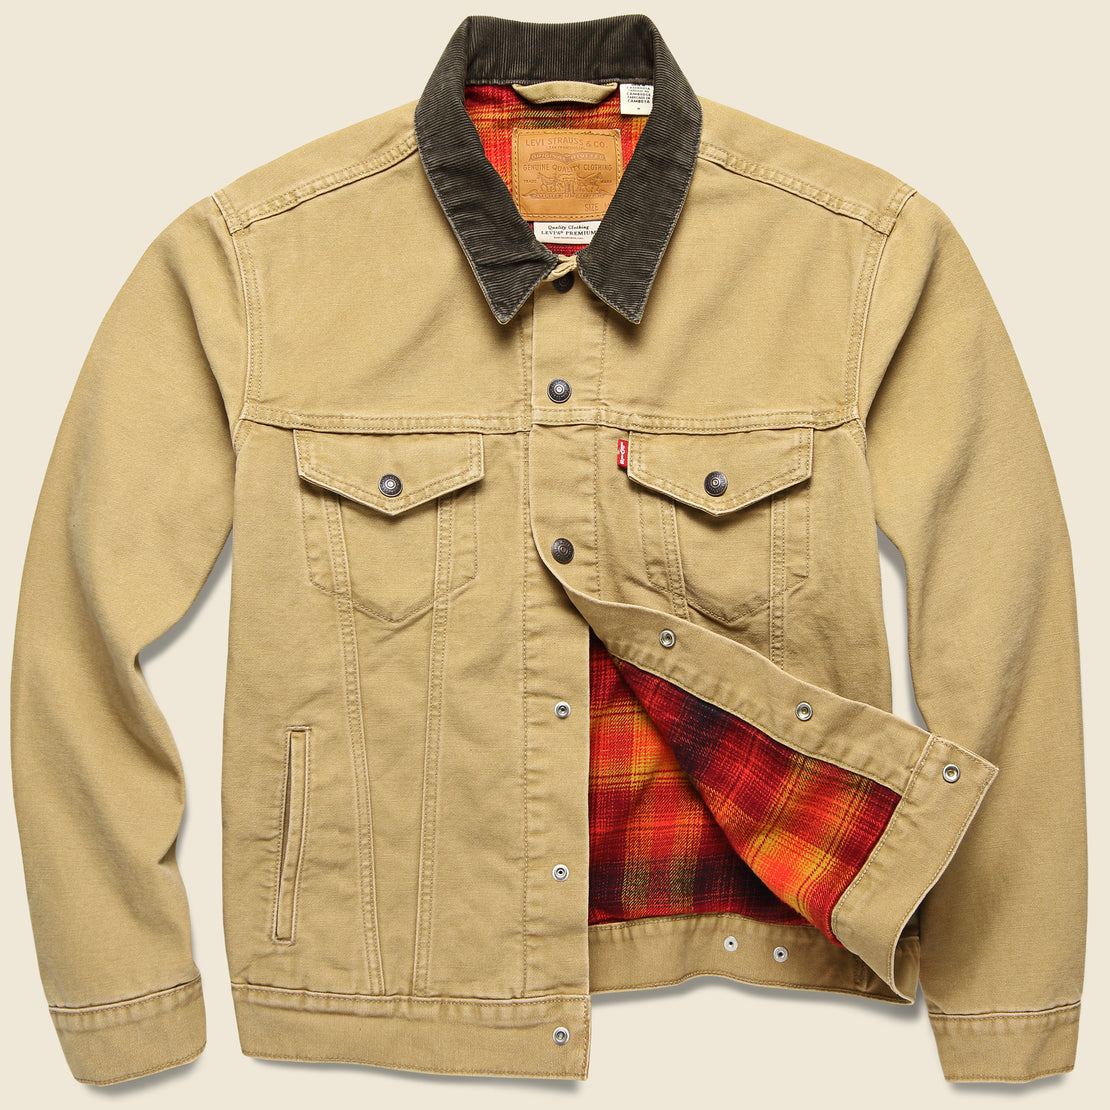 Lined Trucker Jacket - Dijon Canvas